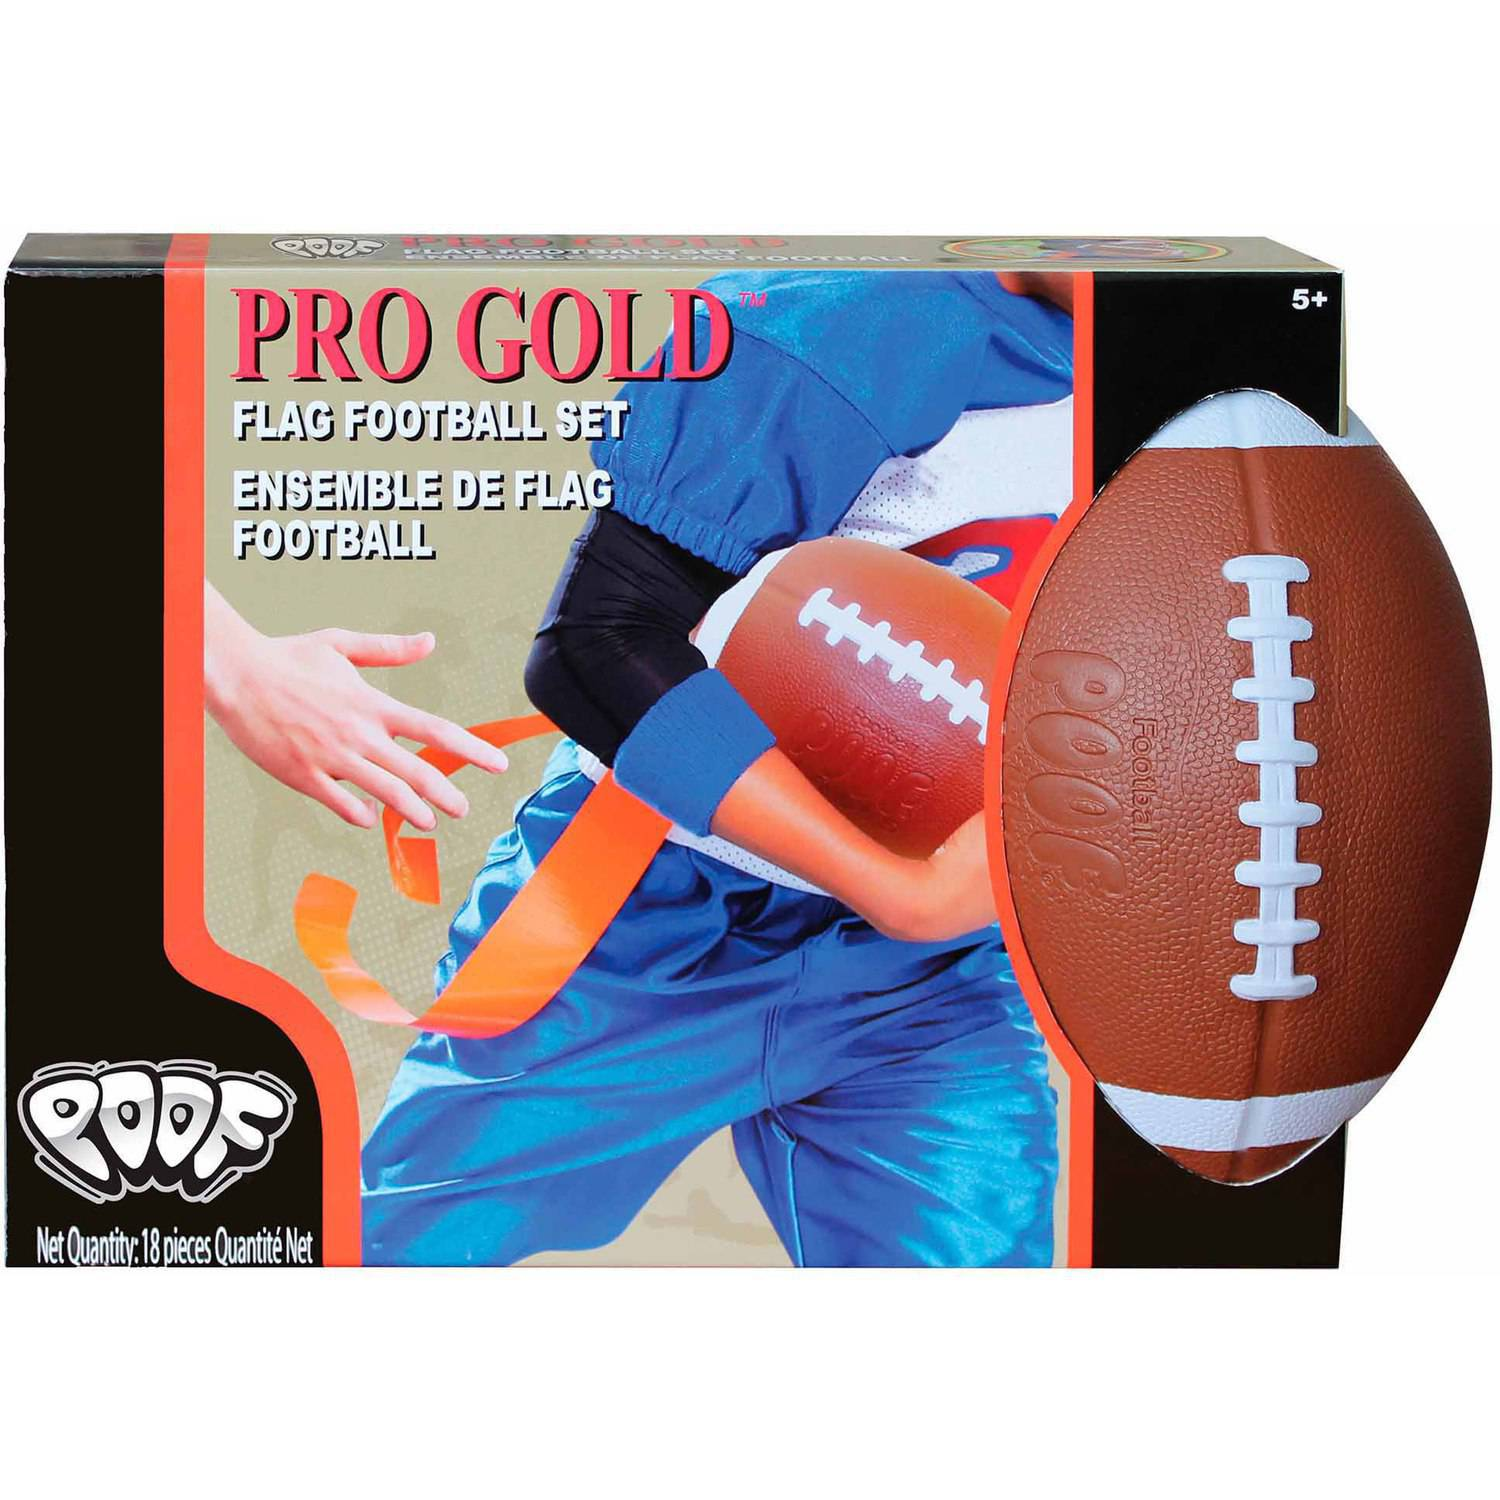 POOF Pro Gold Flag Football Set by POOF-Slinky, Inc.